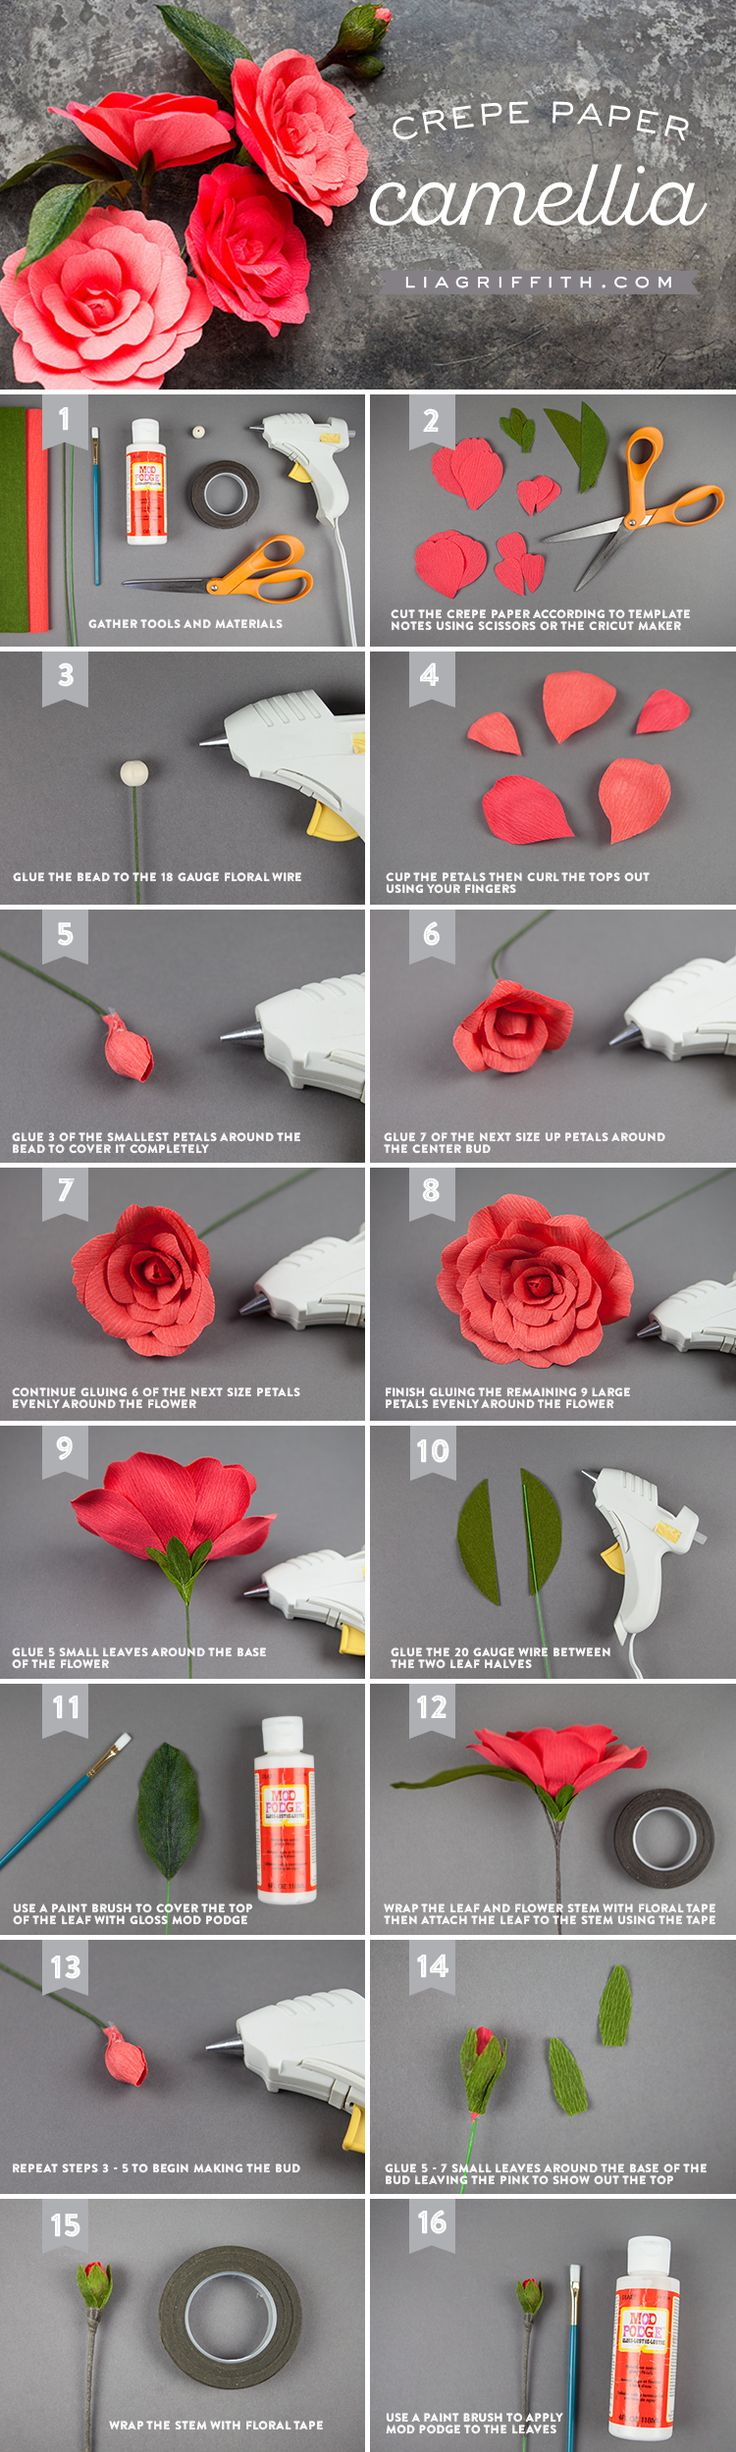 Go with the flow(er)! Join the crepe paper revival and create some gorgeous camellia flowers to adorn your home. So simple...